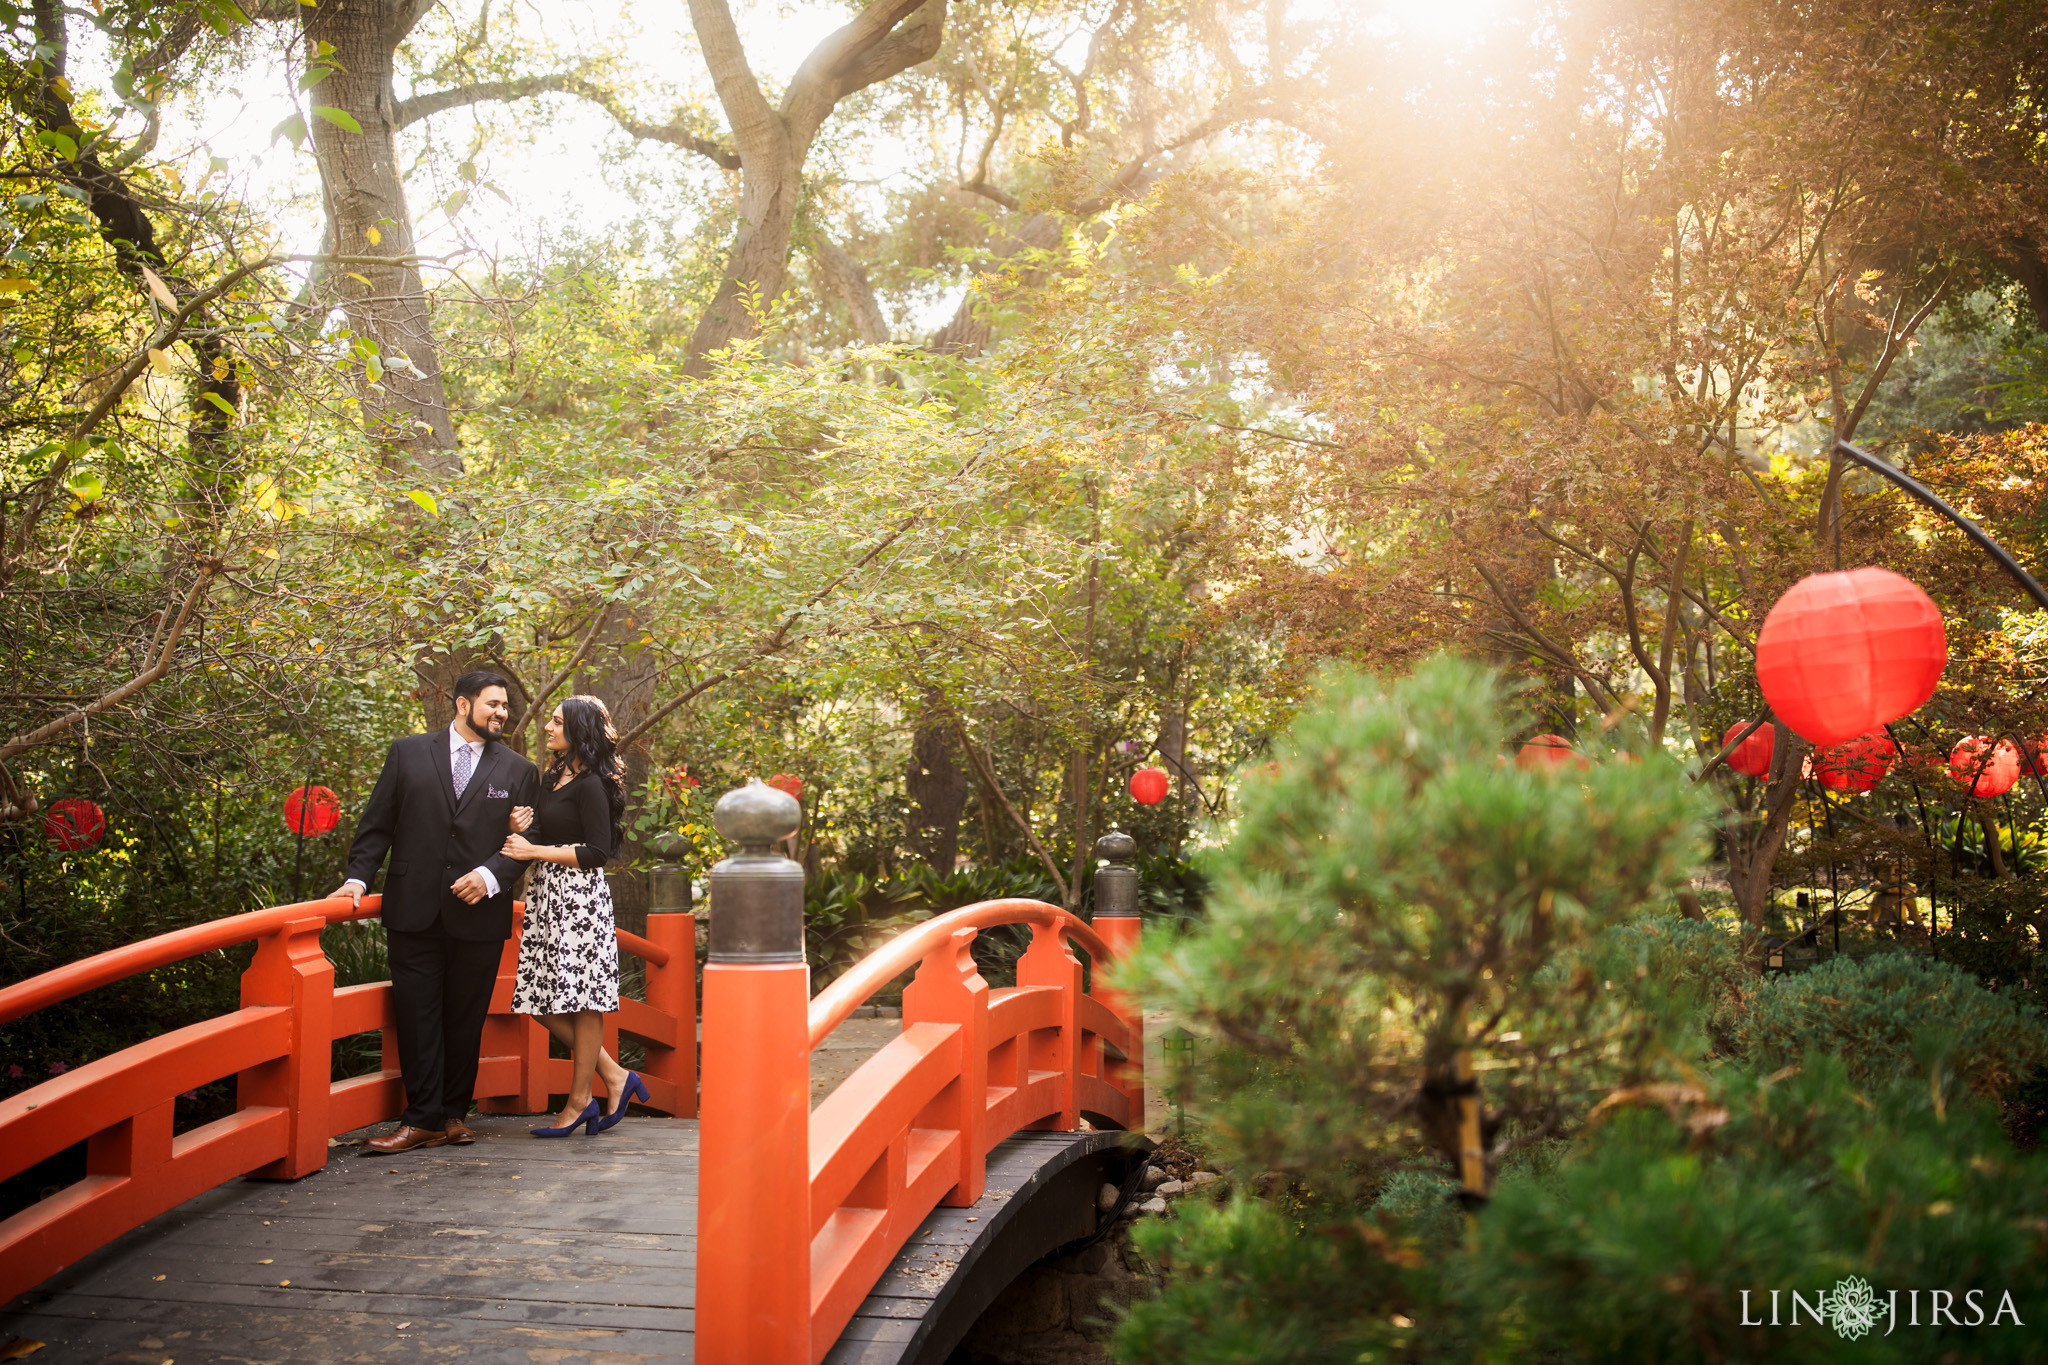 003 descanso gardens los angeles county engagement session